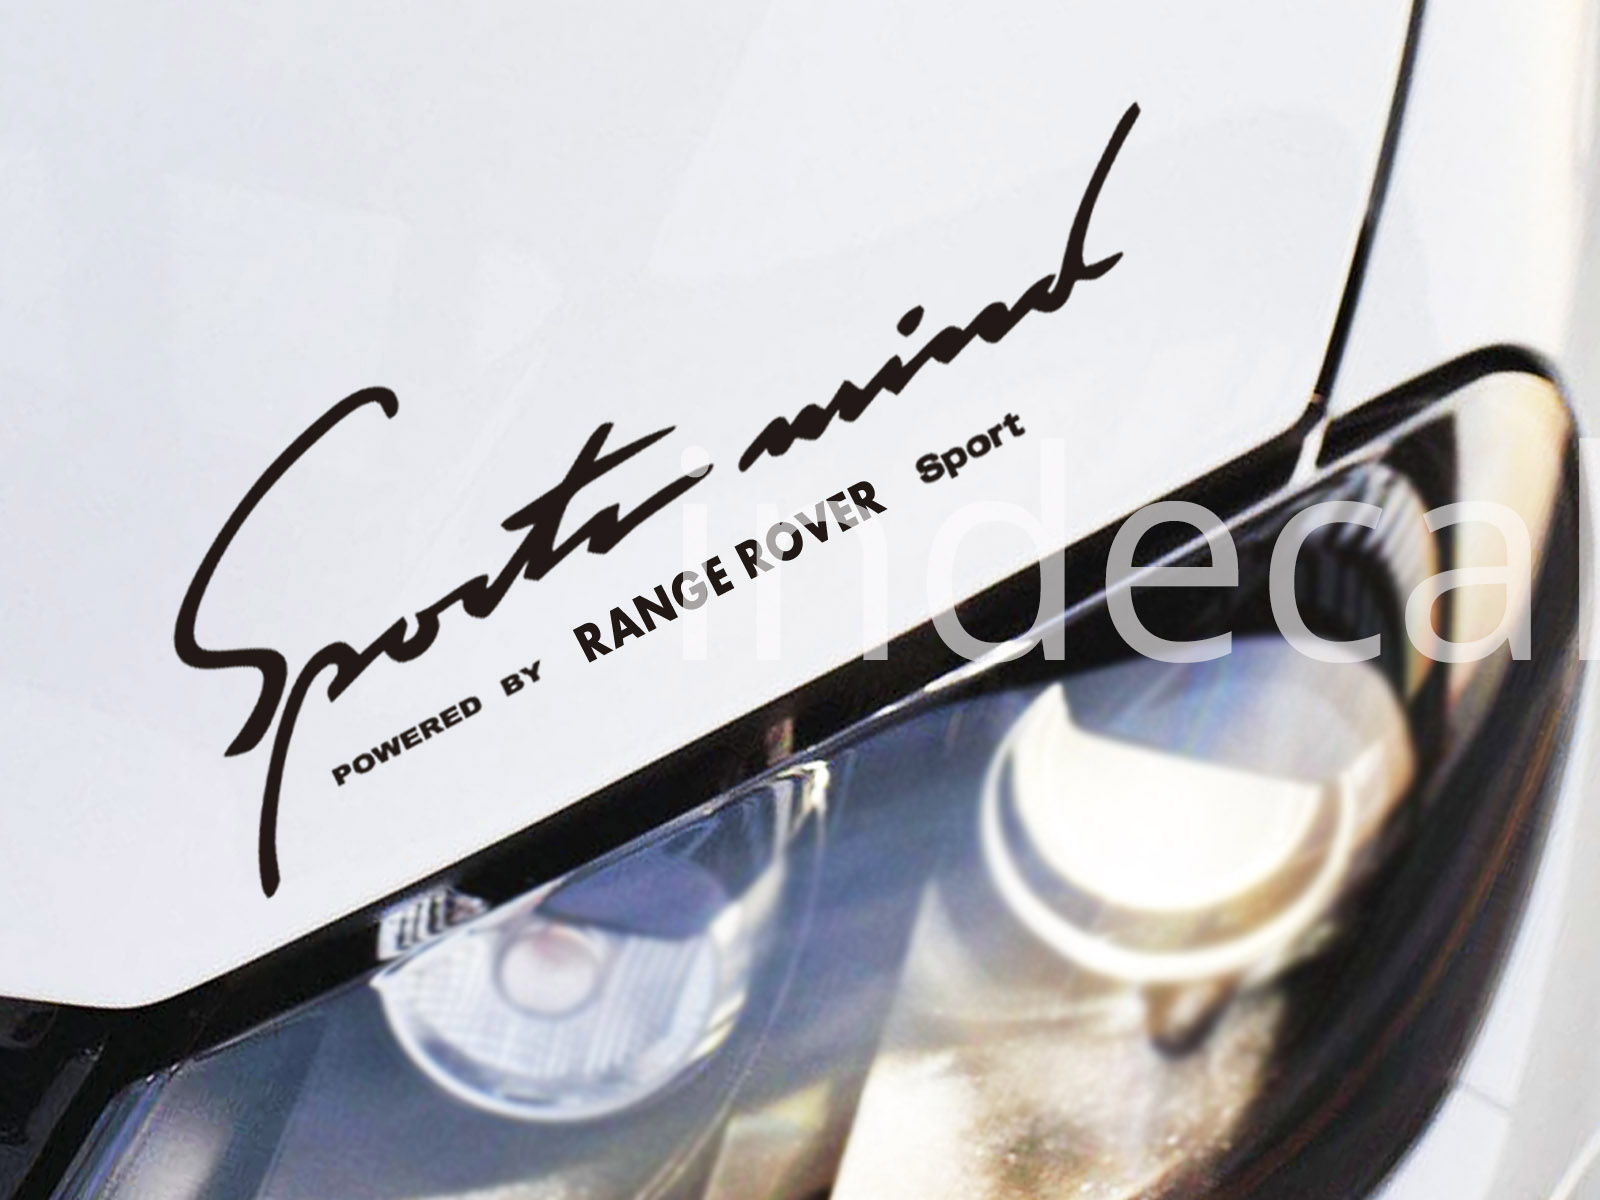 1 x Range Rover Sports Mind Sticker - Black